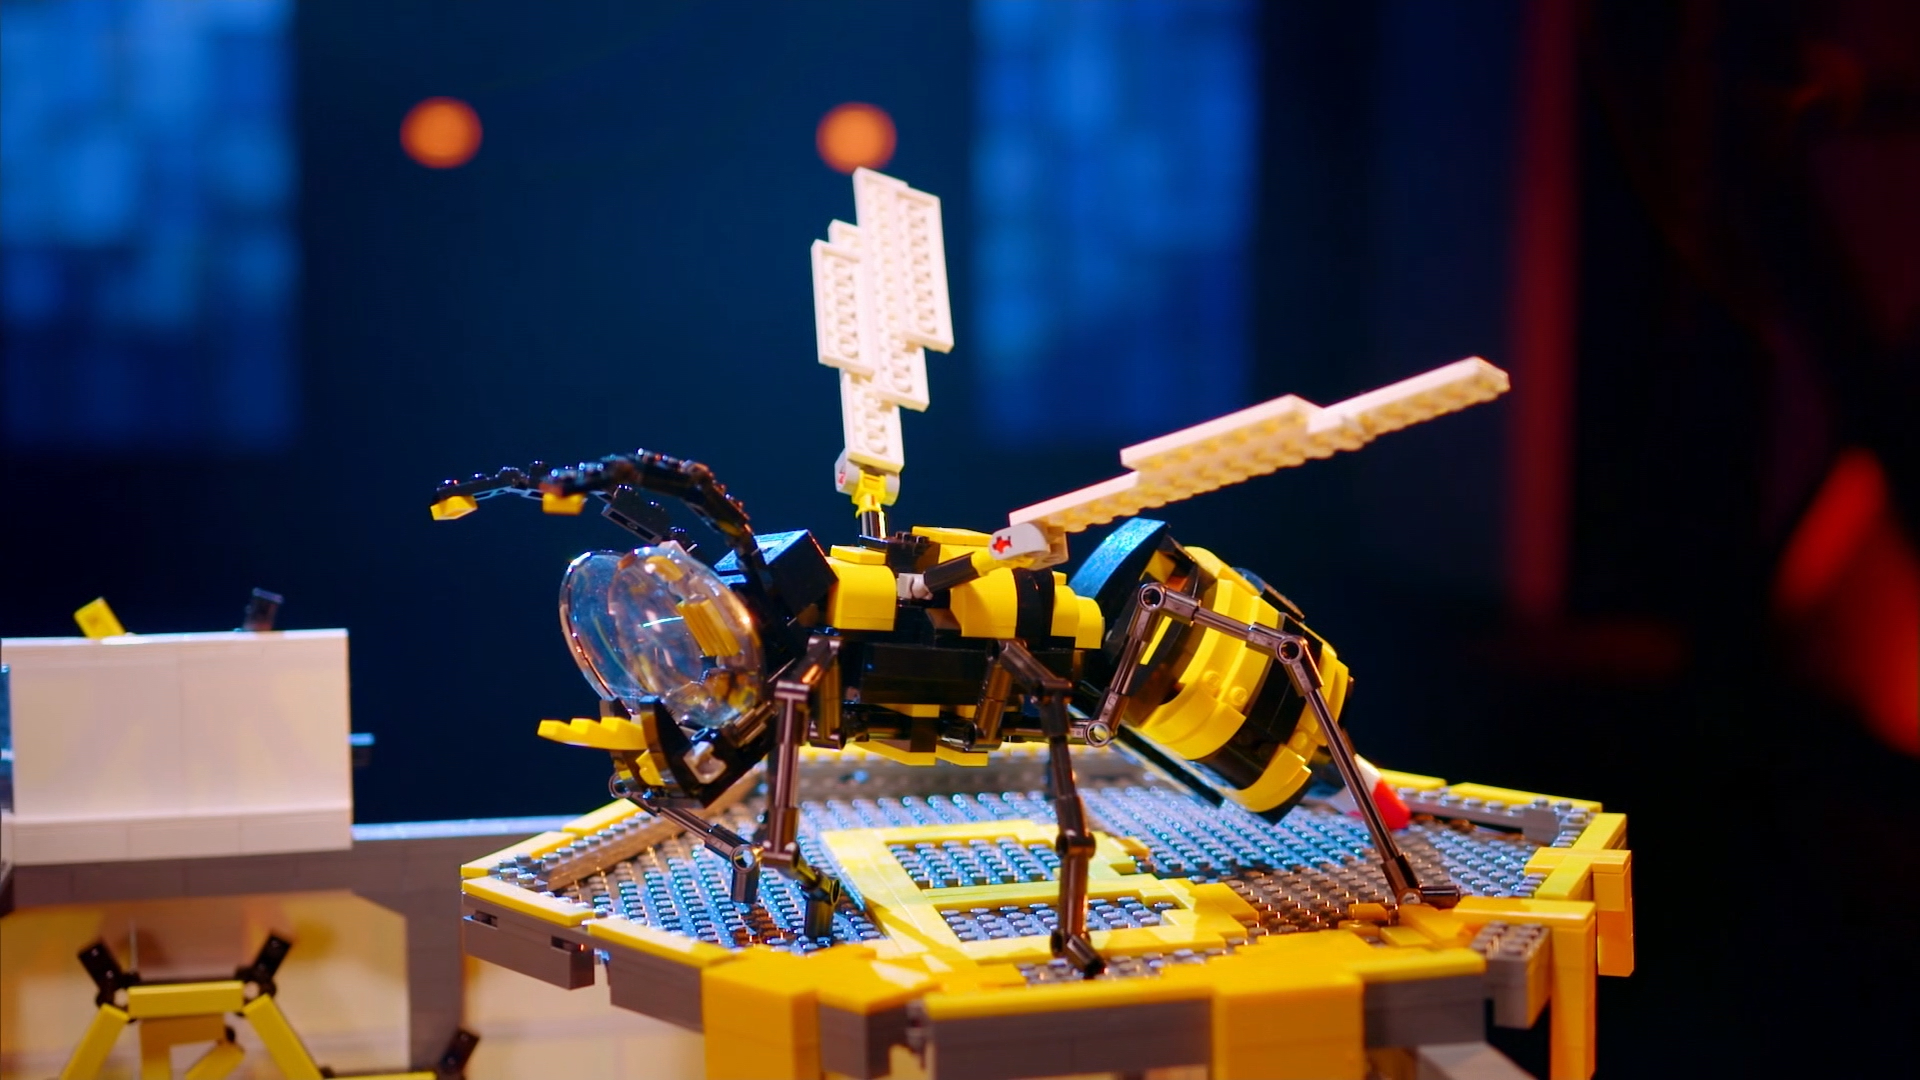 Top 5 builds from LEGO Masters